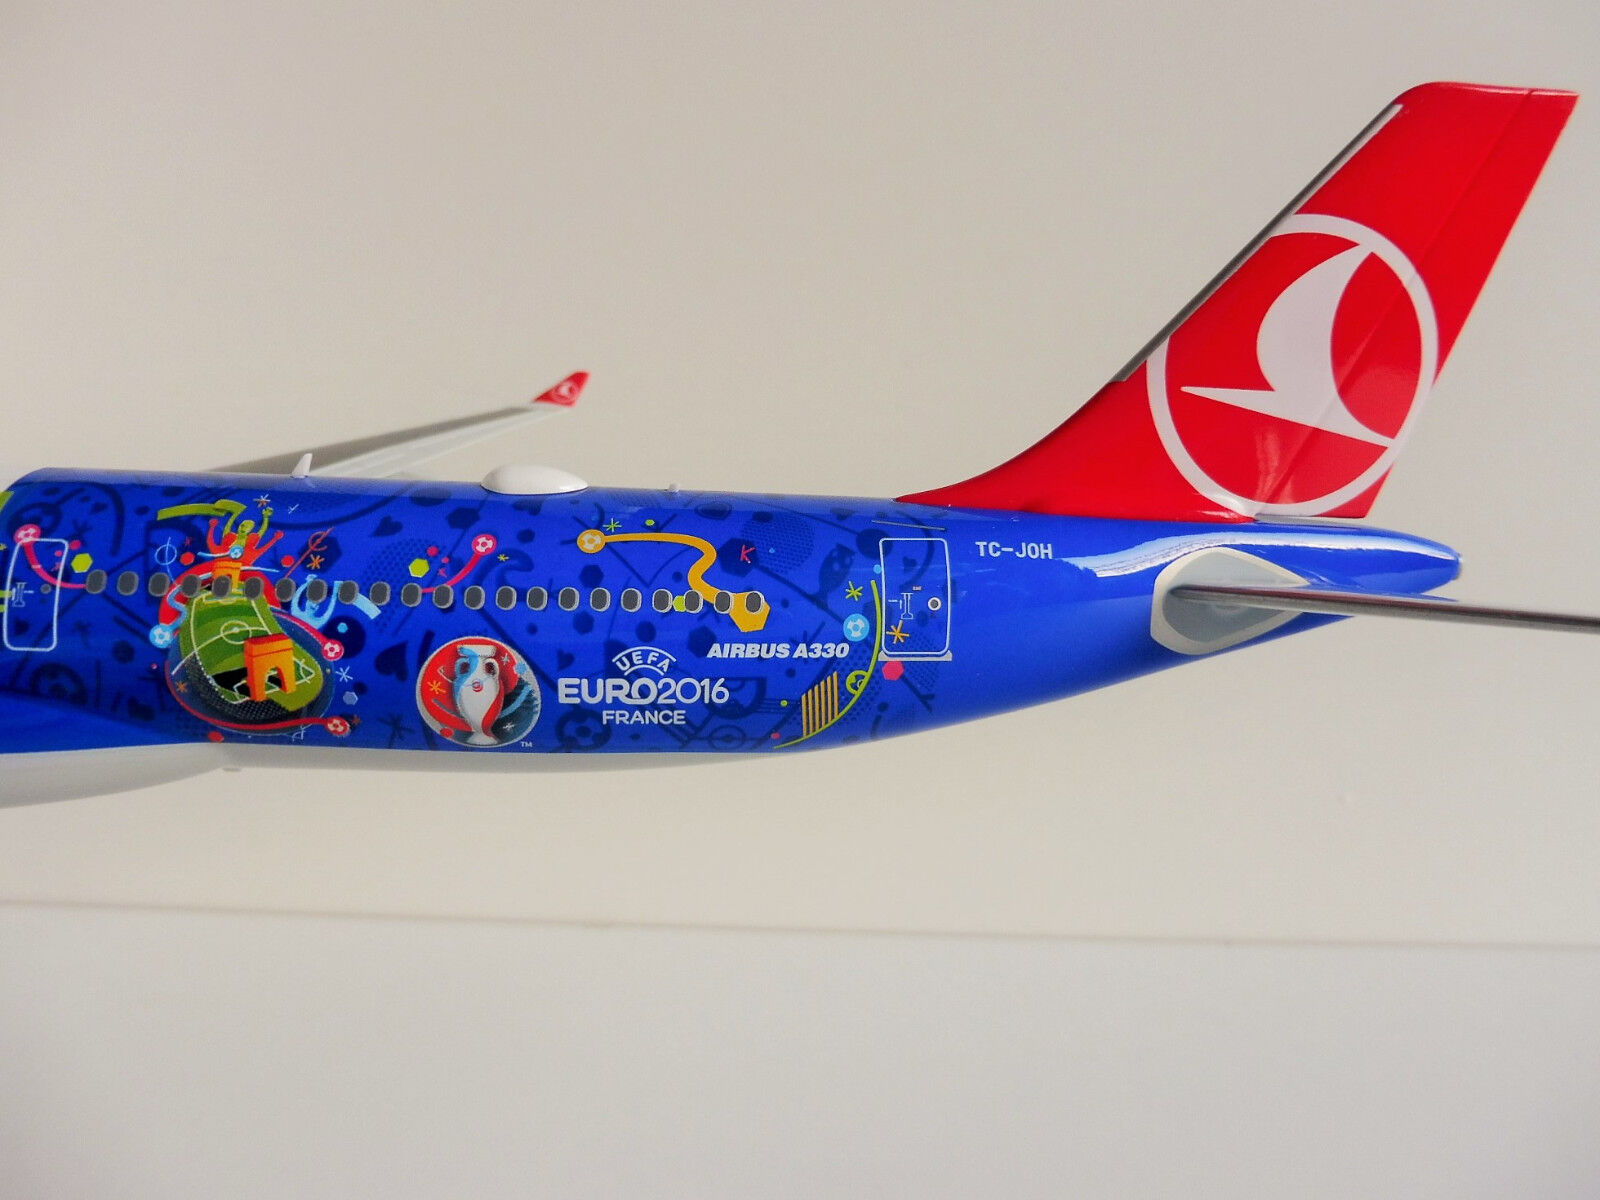 Airbus a330-200 Turkish Airlines 1 200 Herpa Herpa Herpa 558105 a330 Uefa Euro 2016 France 09d949